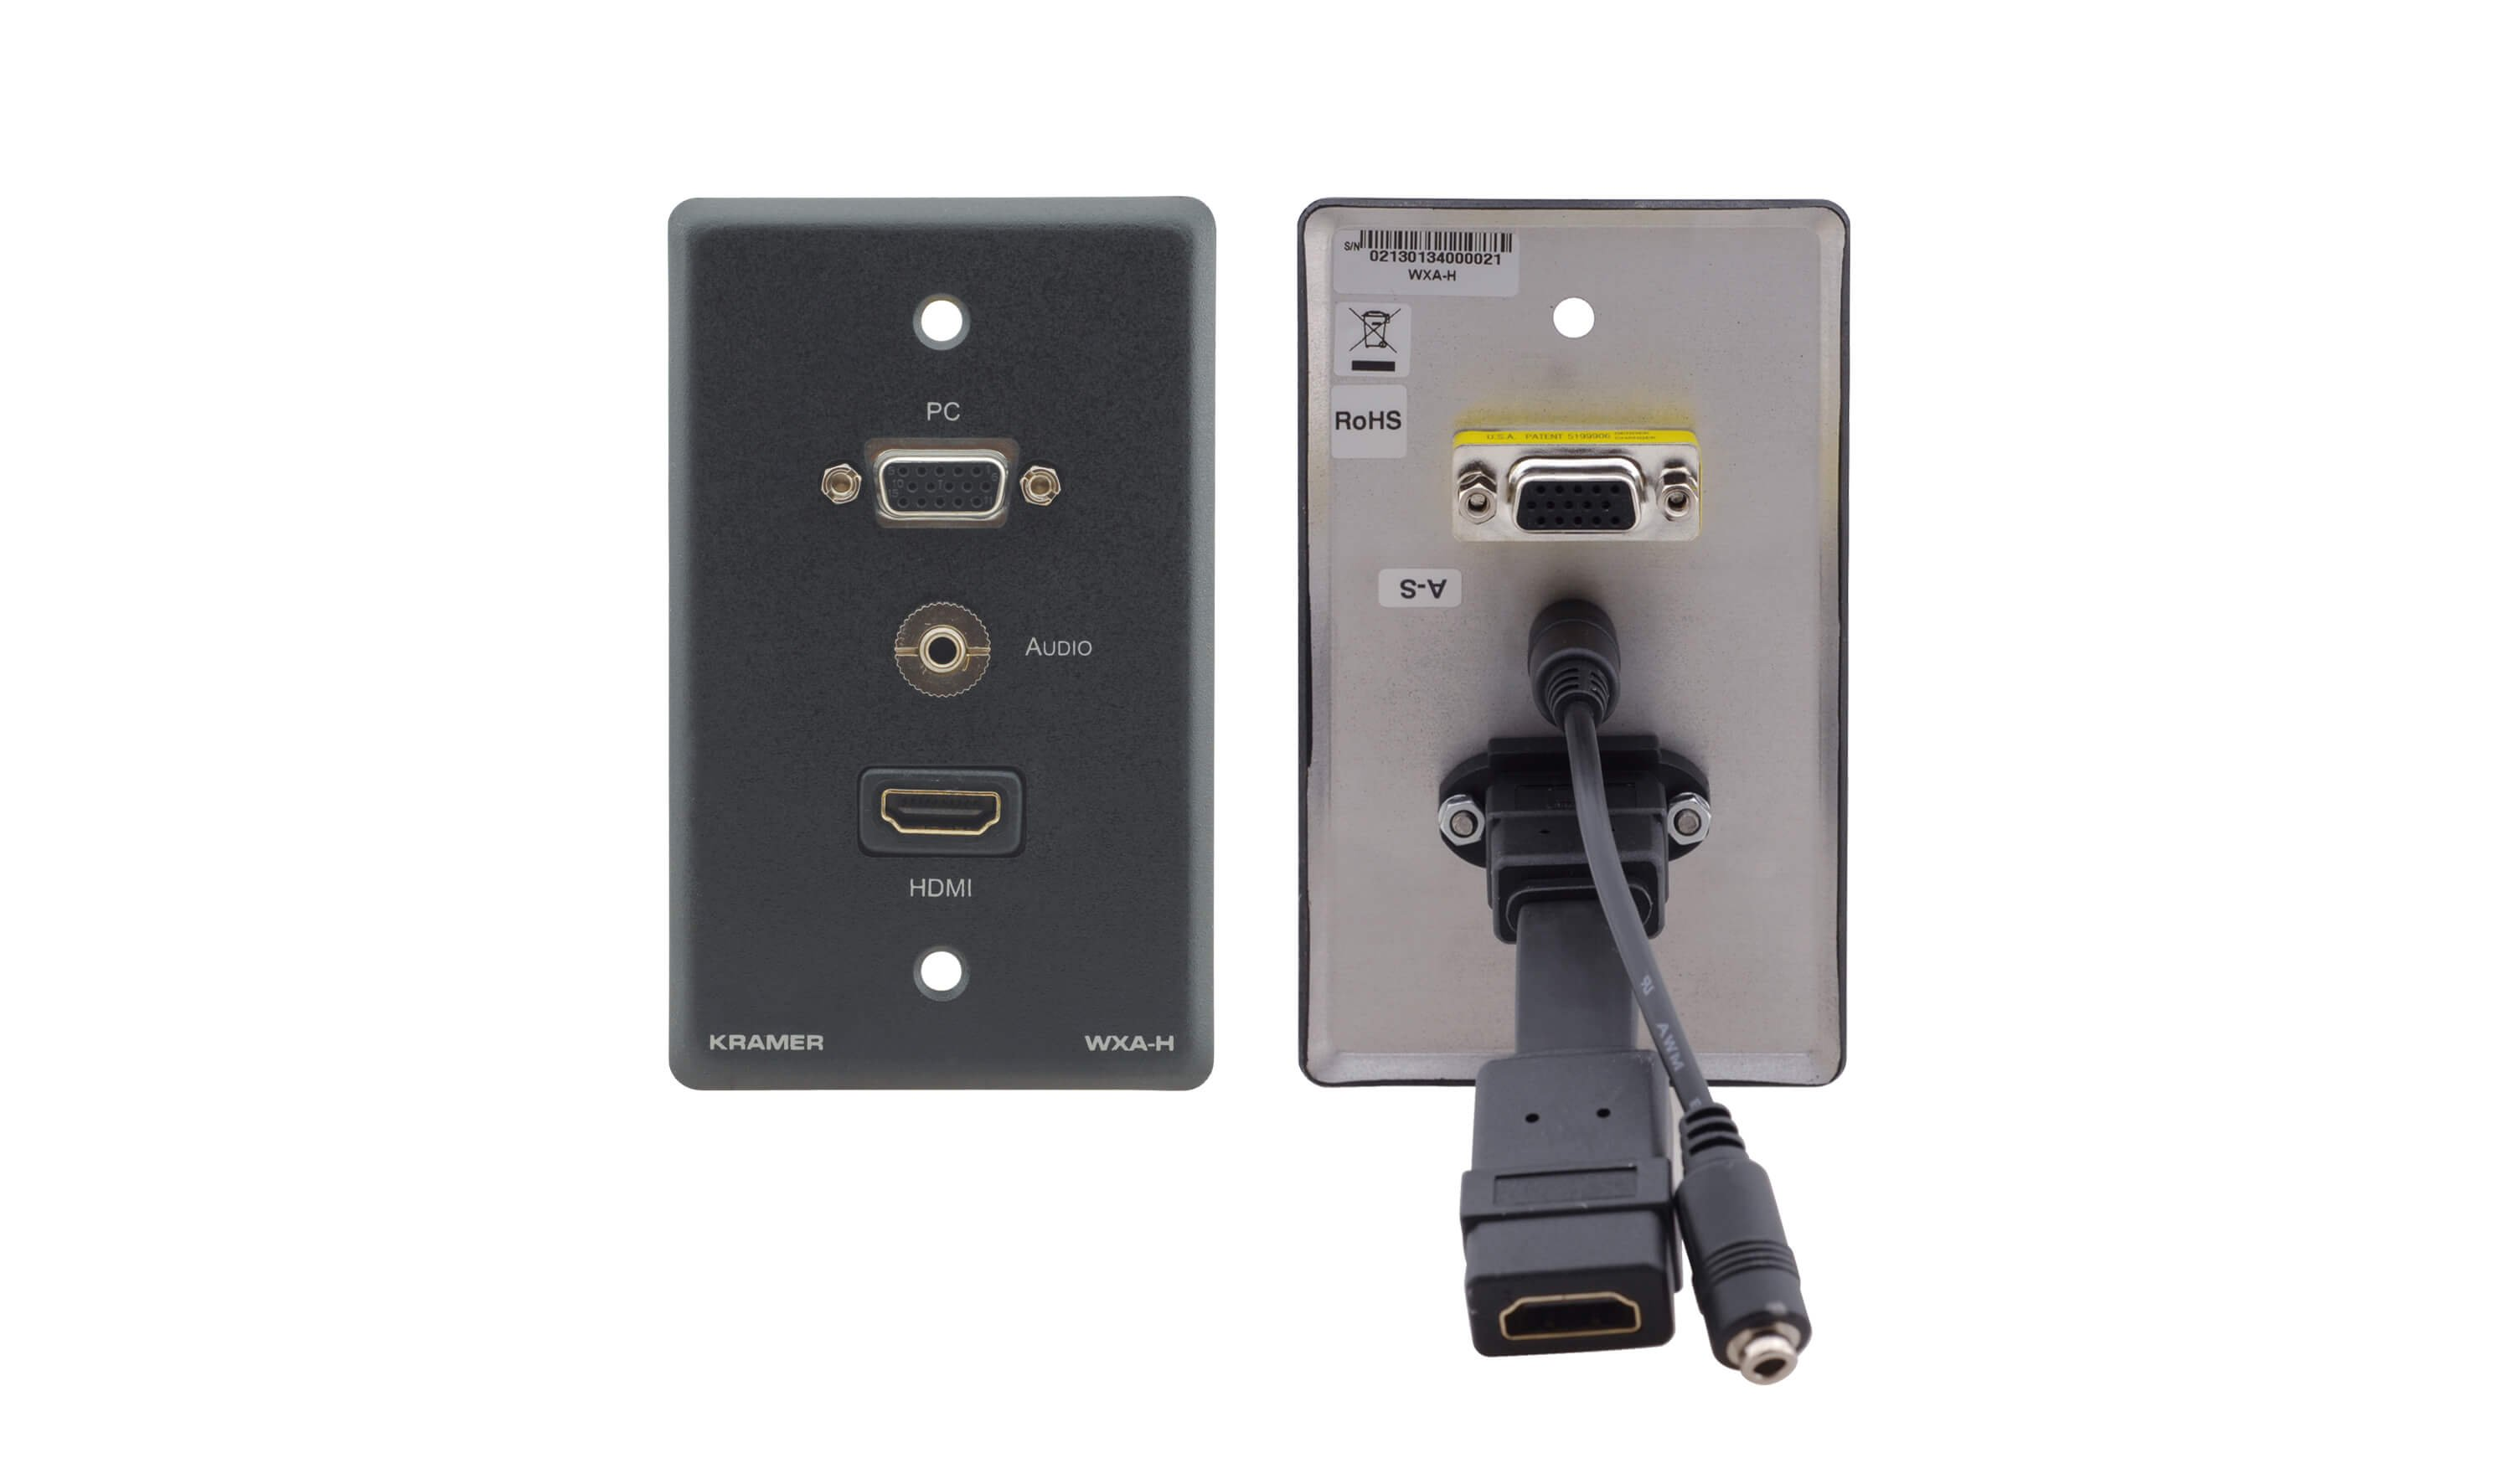 Passive DECORA Wall Plate - 15-Pin HD, 3.5mm Audio, and HDMI